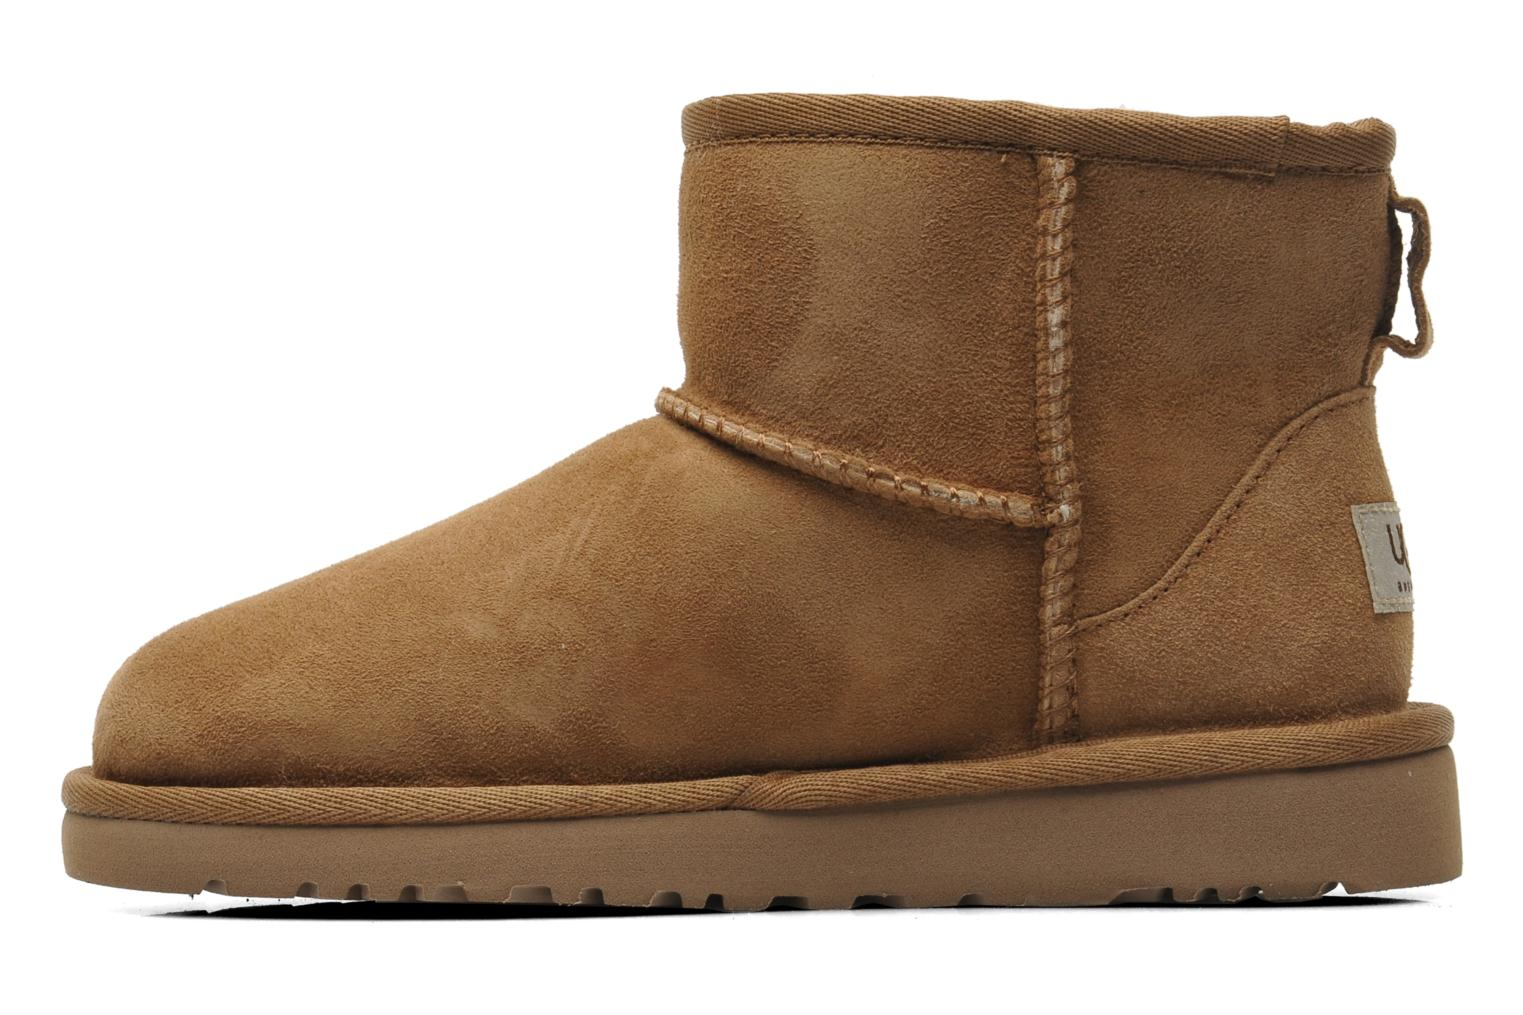 Bottines et boots UGG K CLASSIC MINI Beige vue face